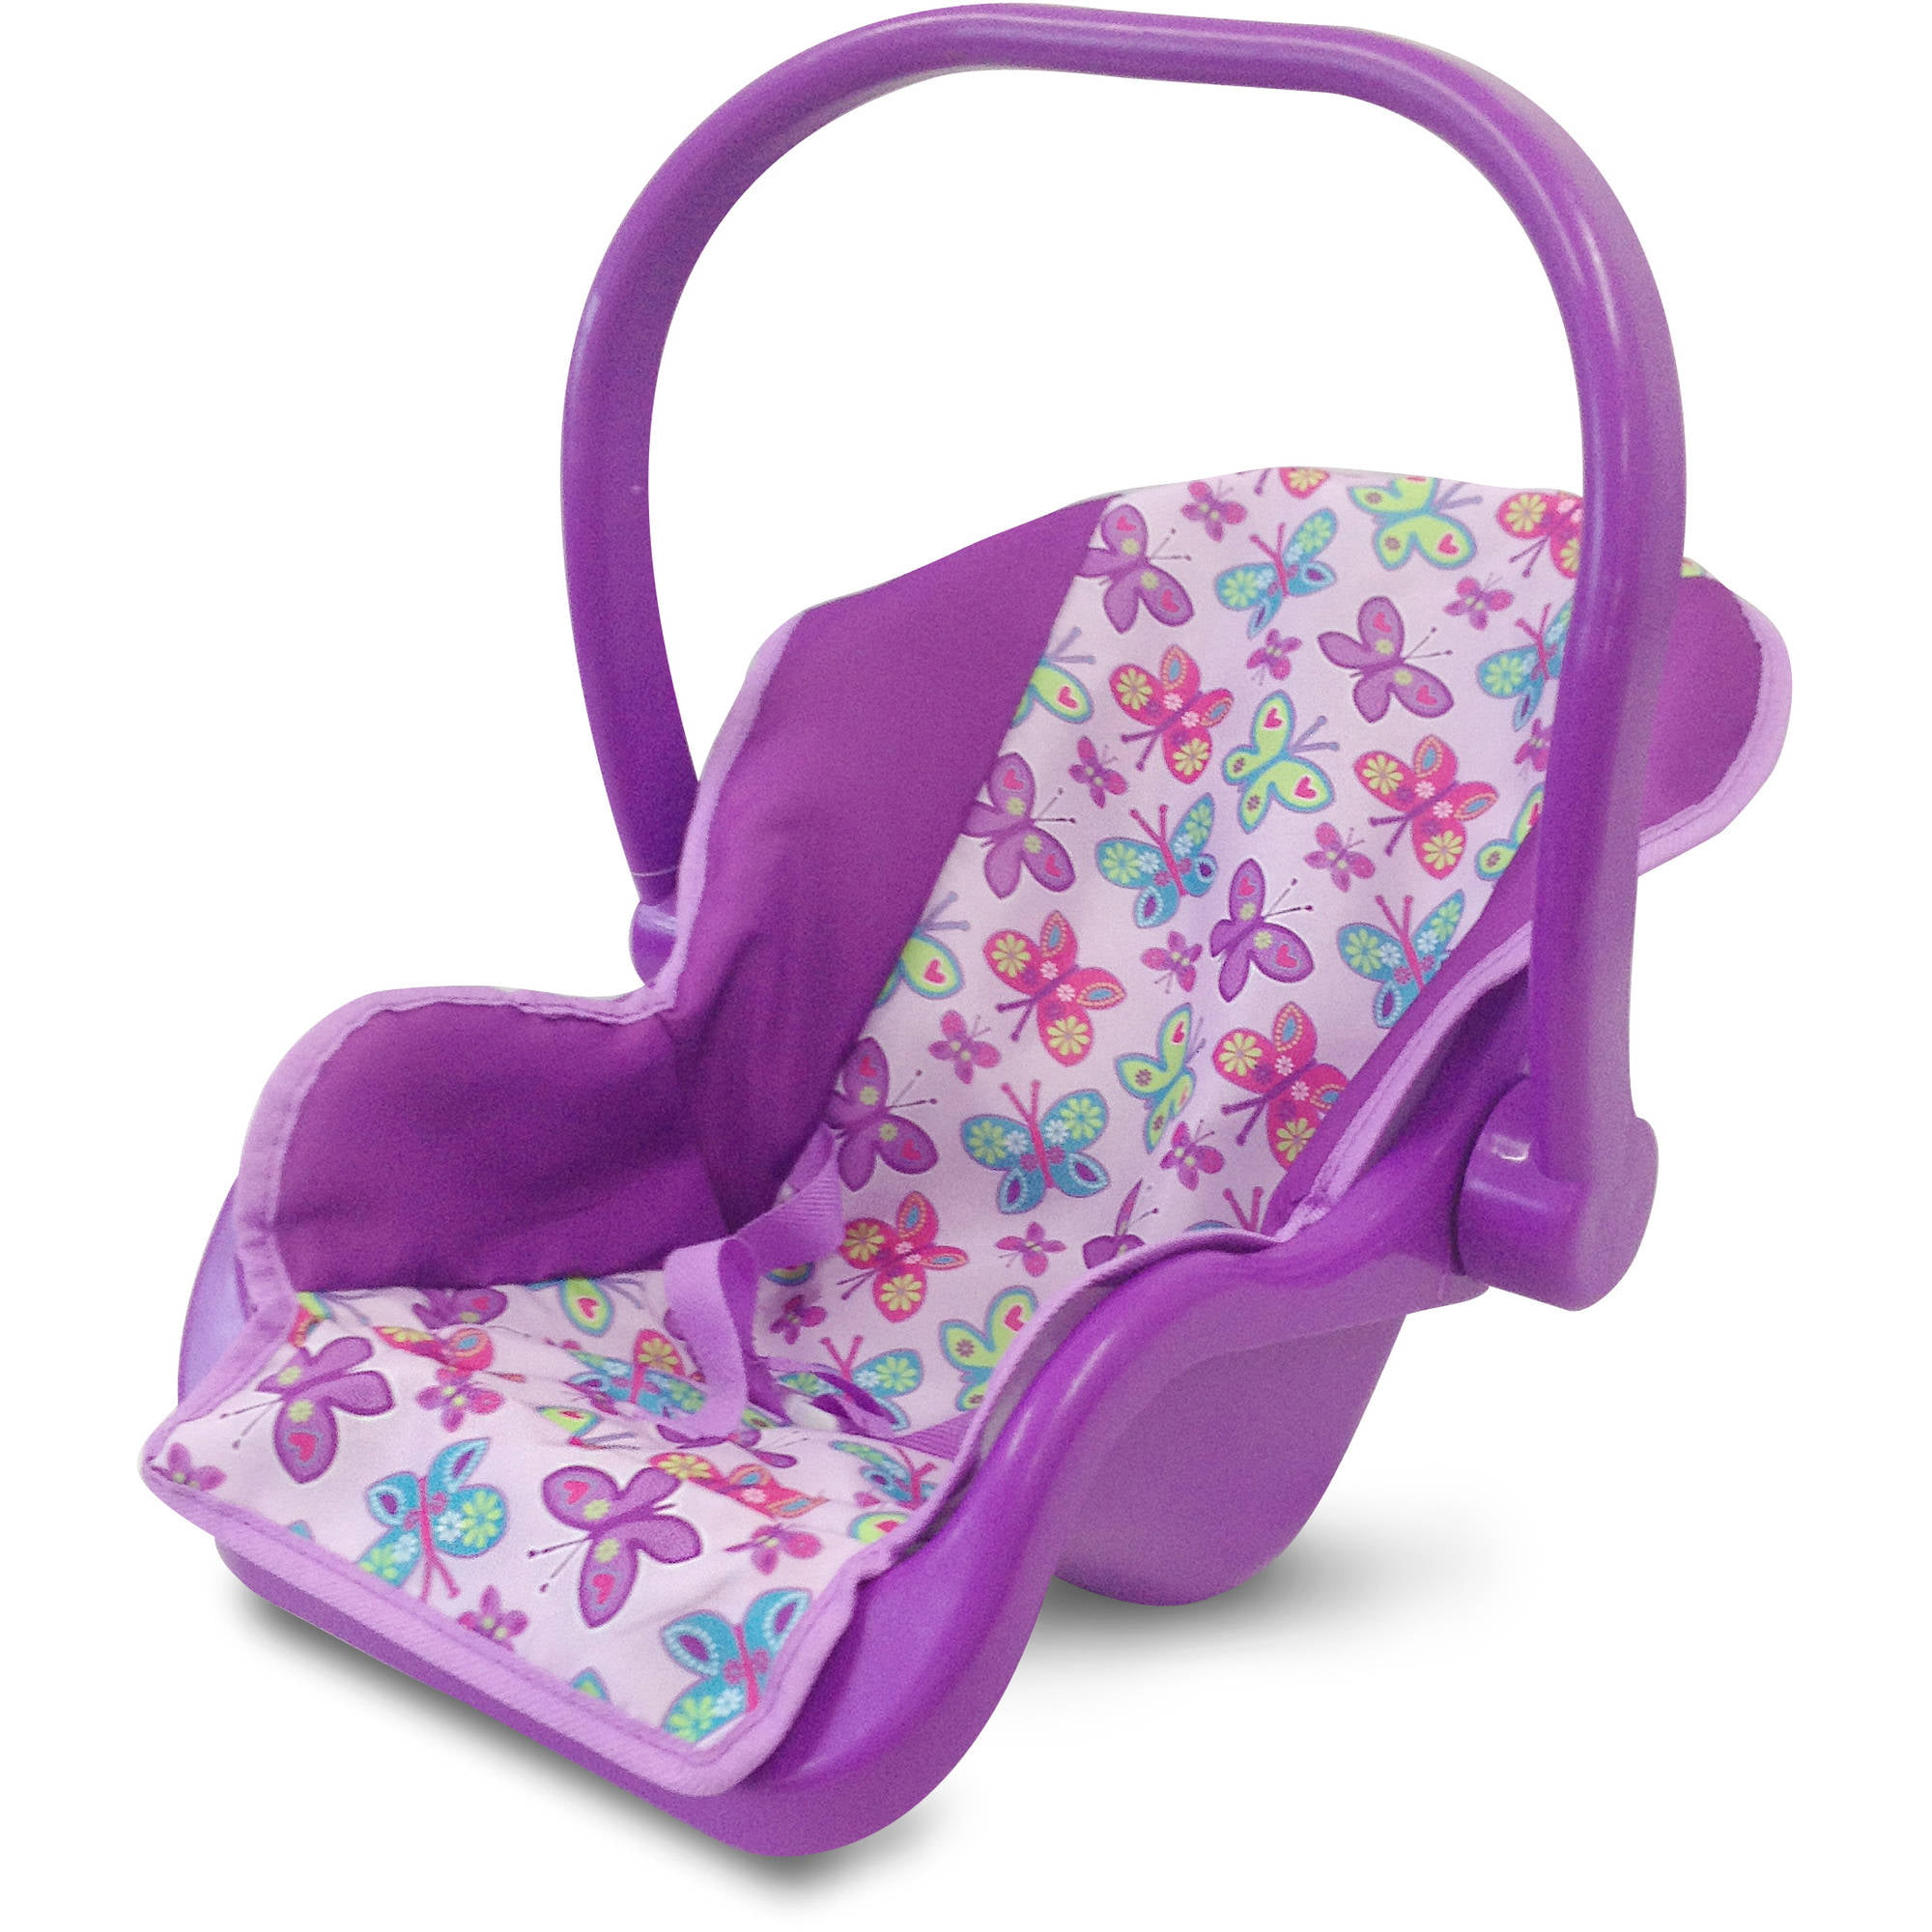 Baby bath chair walmart - Baby Bath Chair Walmart 28